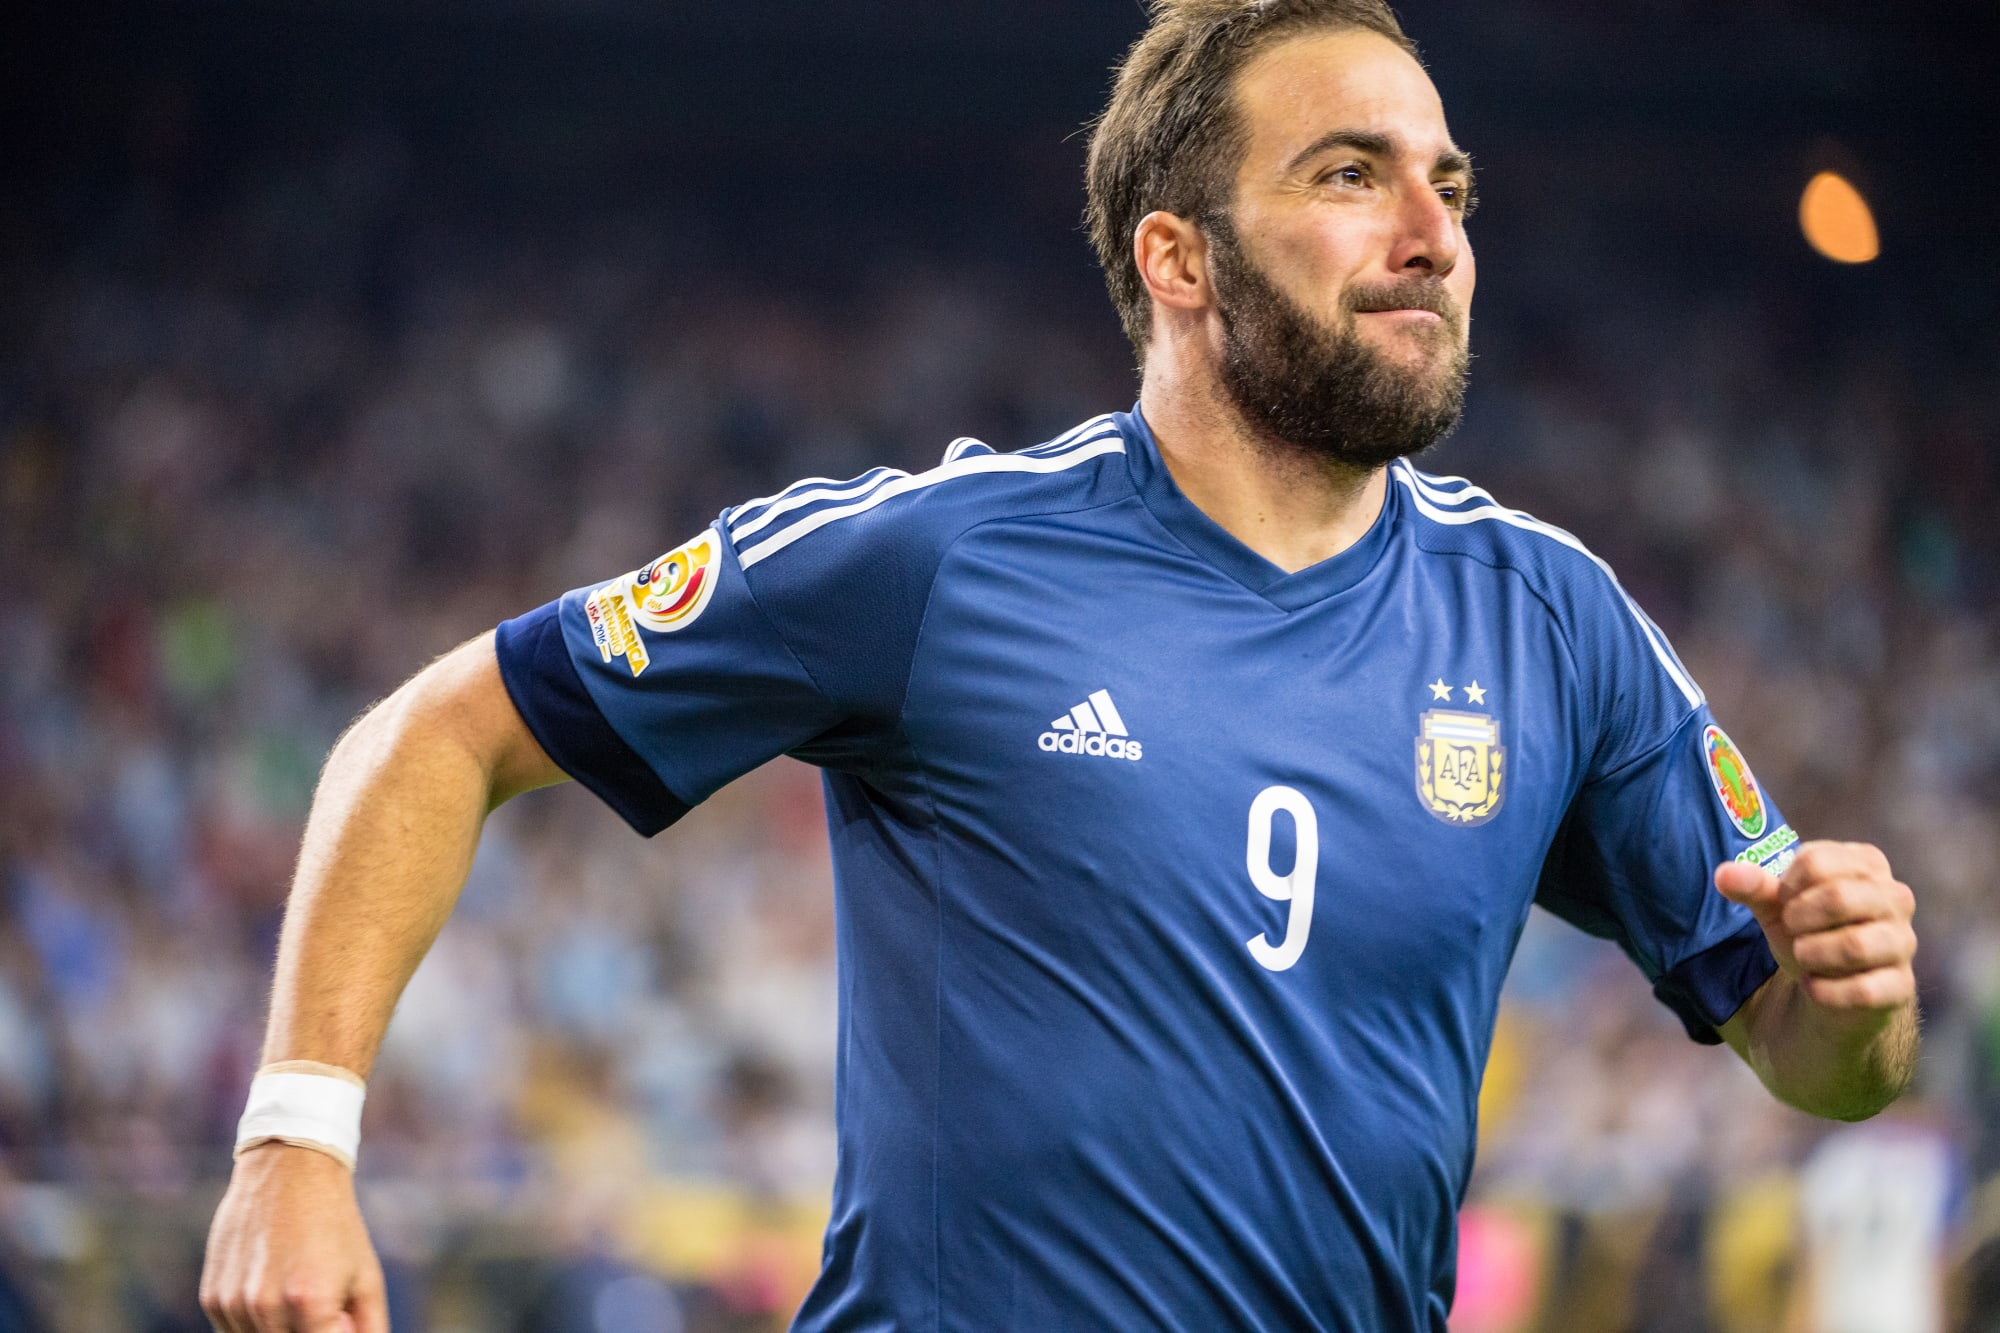 Gonzalo Higuain will not join Liverpool FC